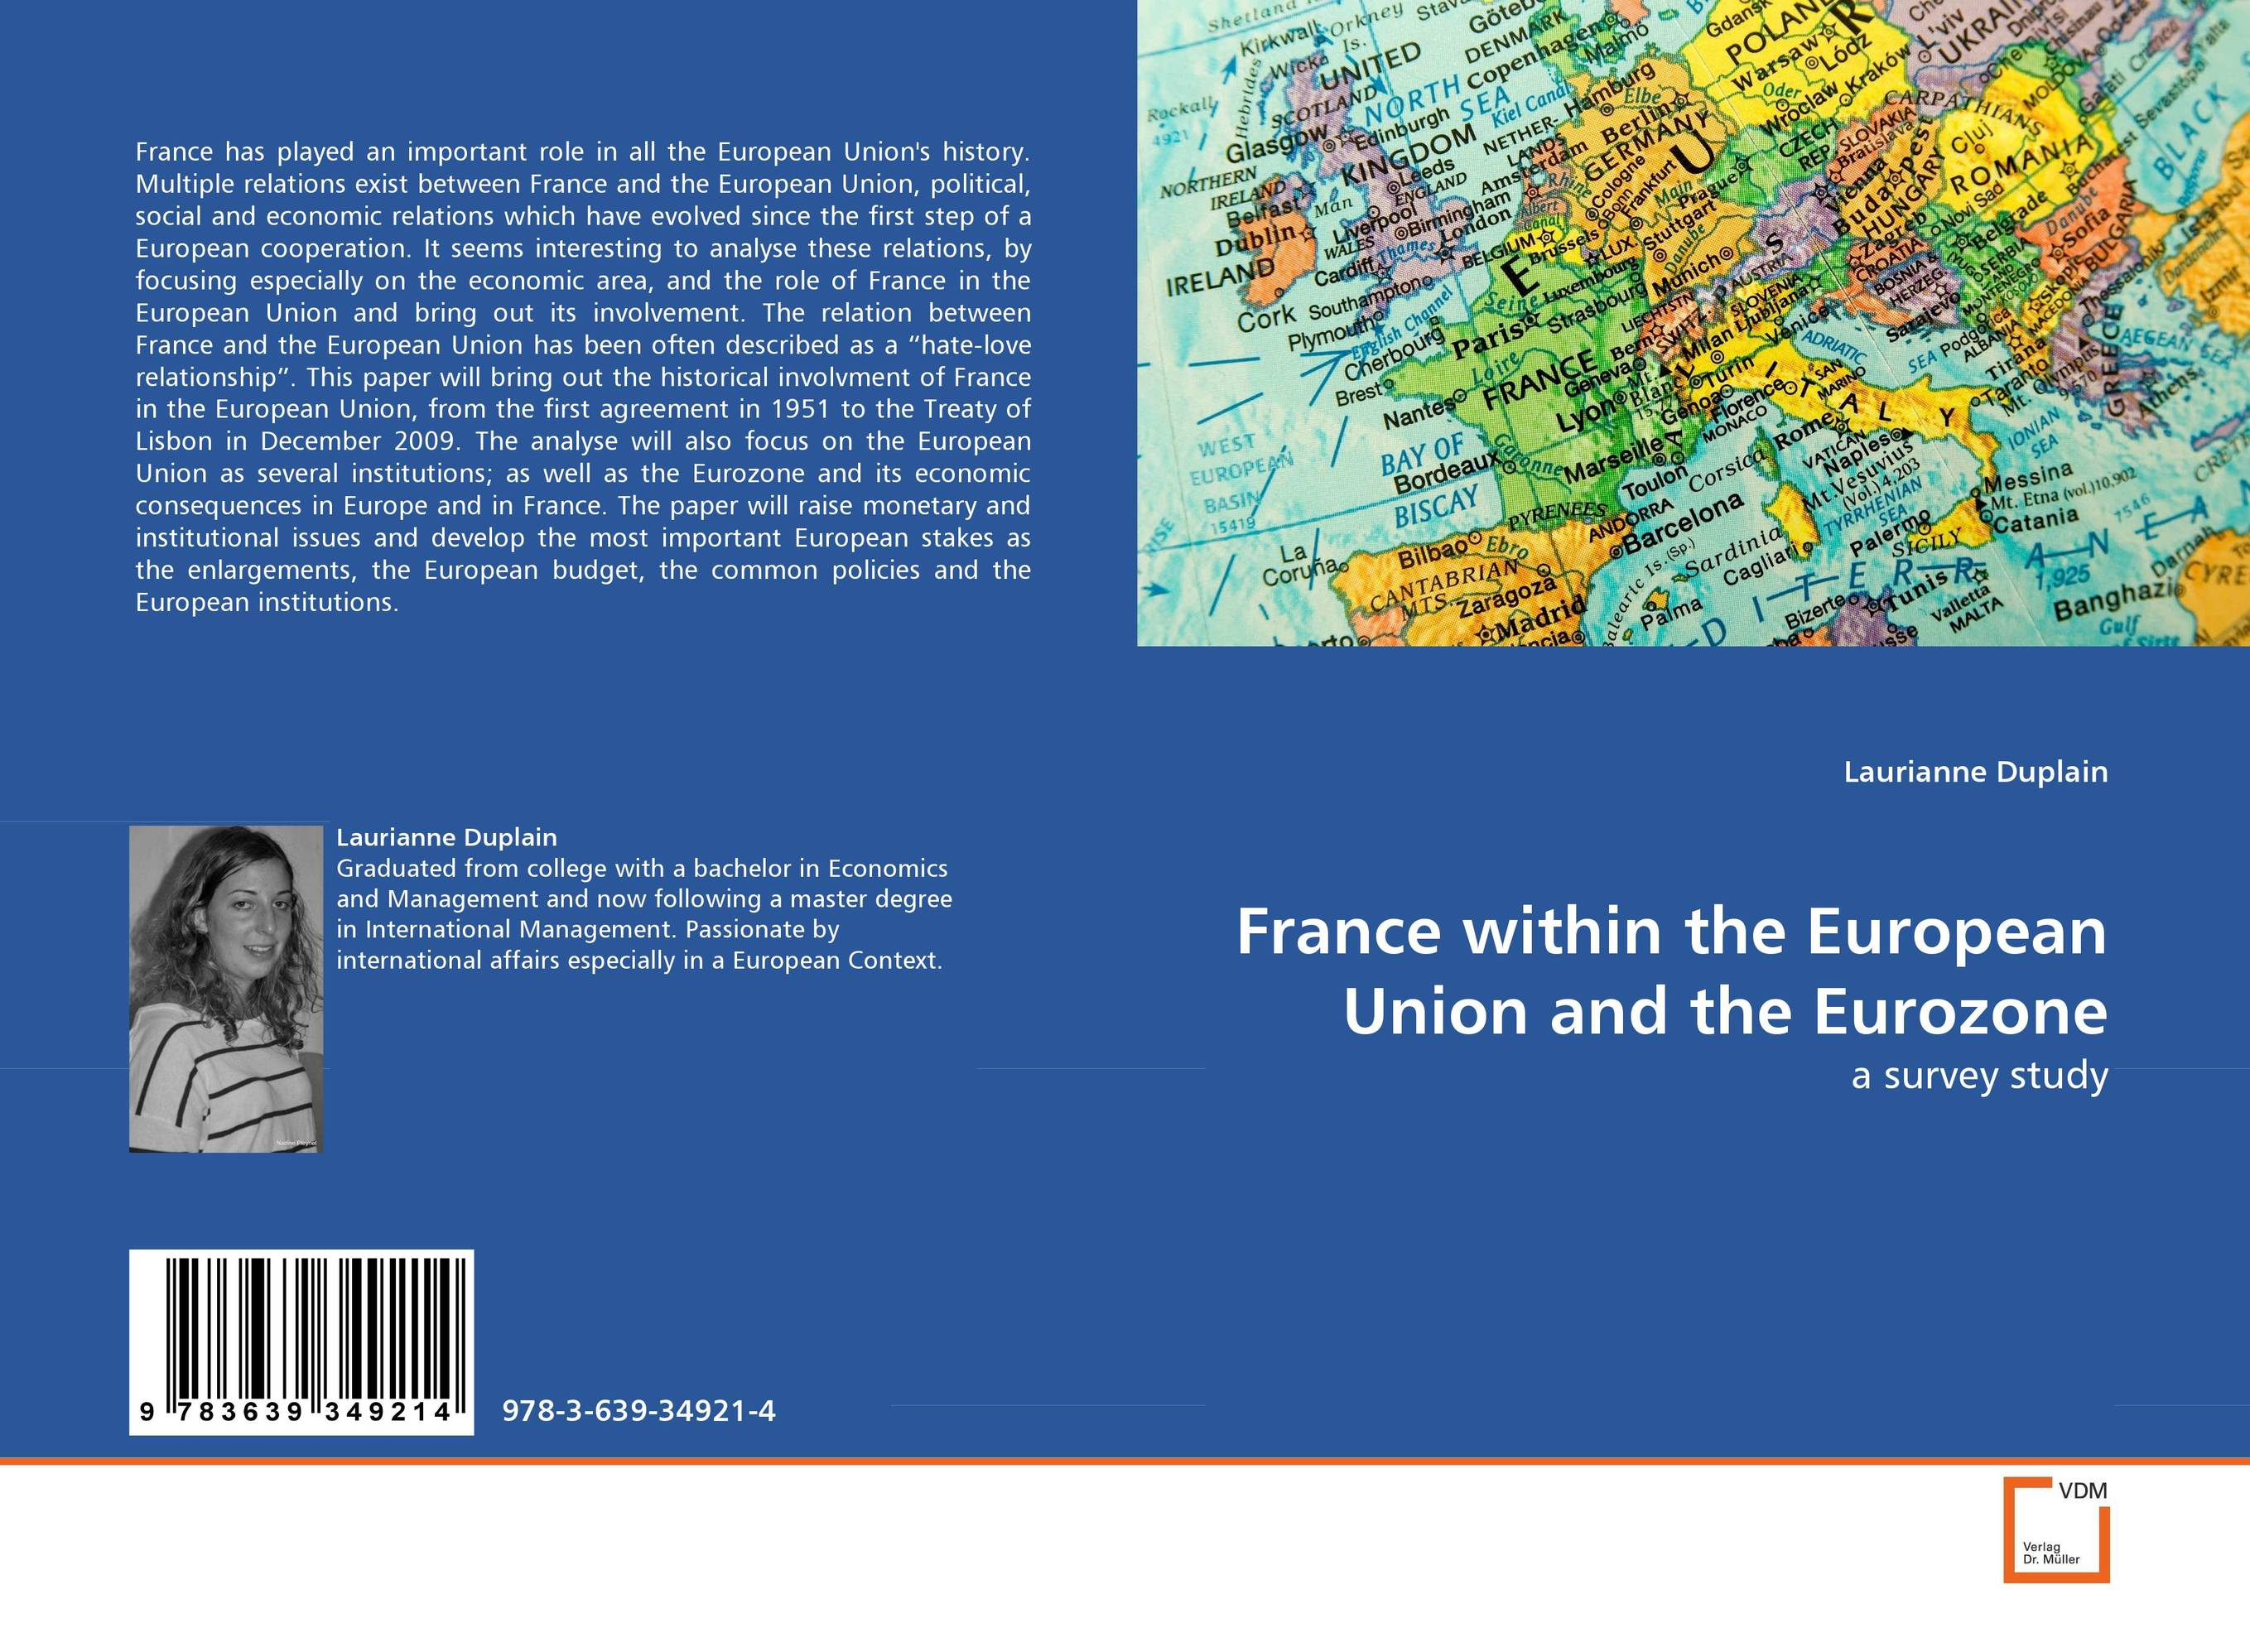 France within the European Union and the Eurozone development of the third european union maritime safety package